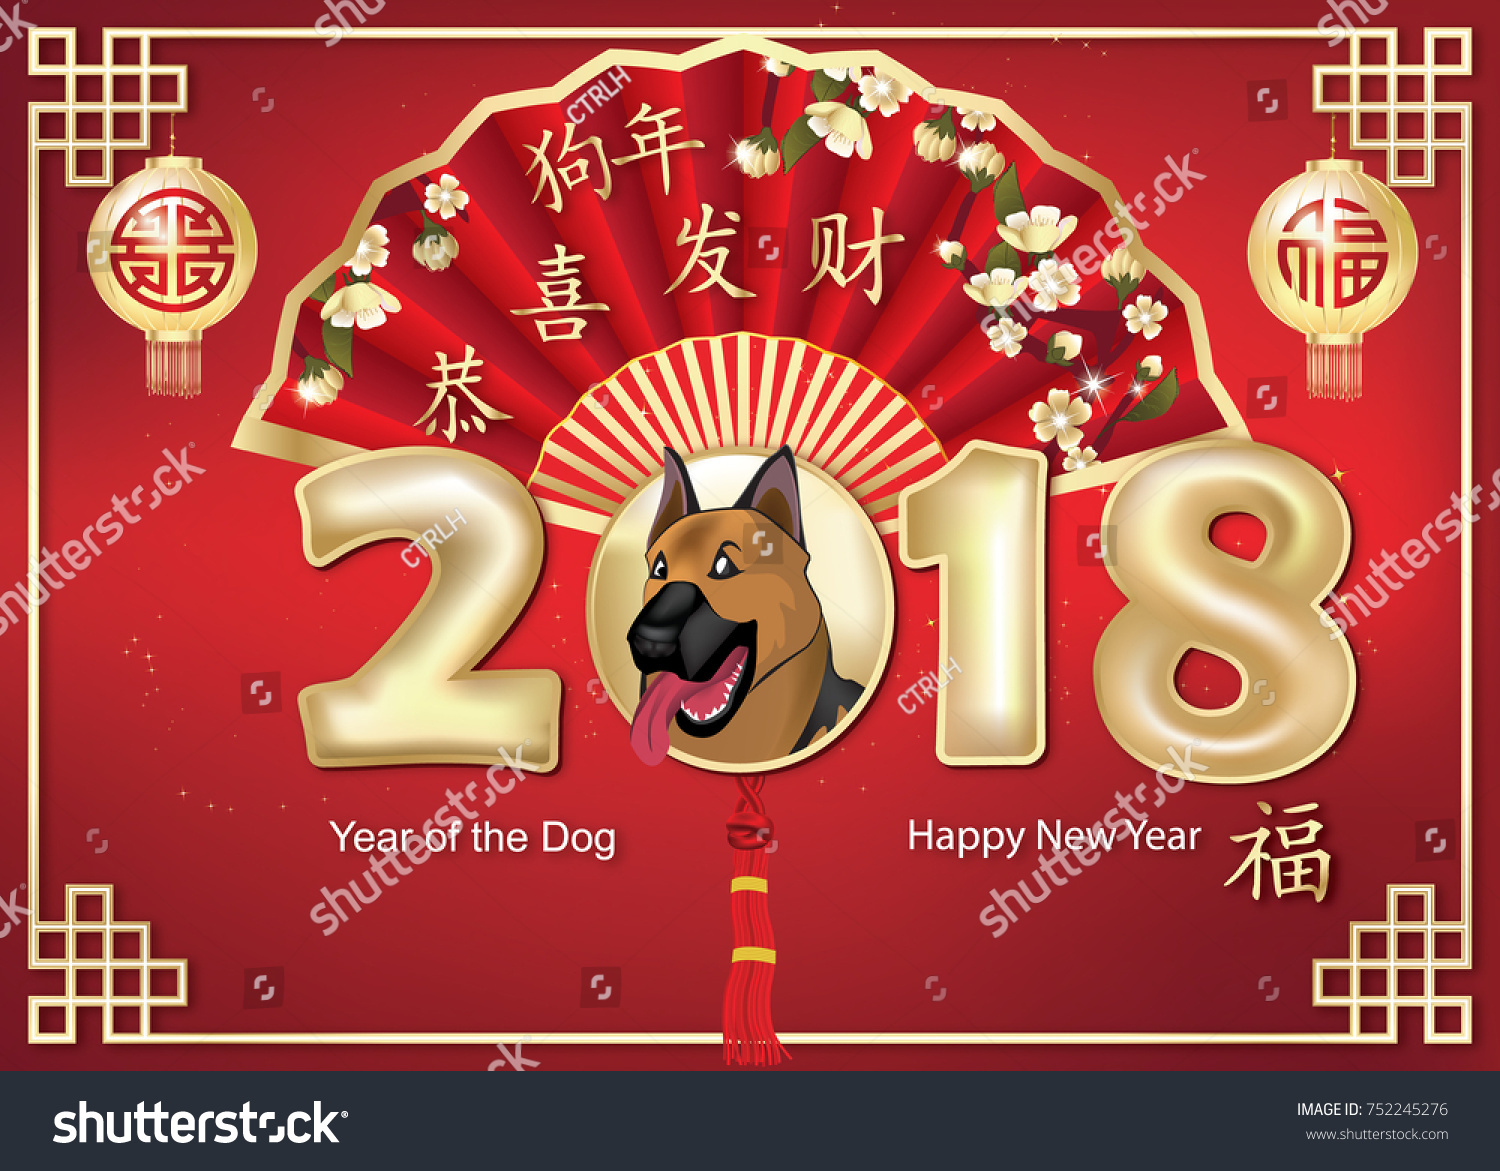 Happy chinese new year 2018 greeting stock illustration 752245276 happy chinese new year 2018 greeting card with text in chinese and english m4hsunfo